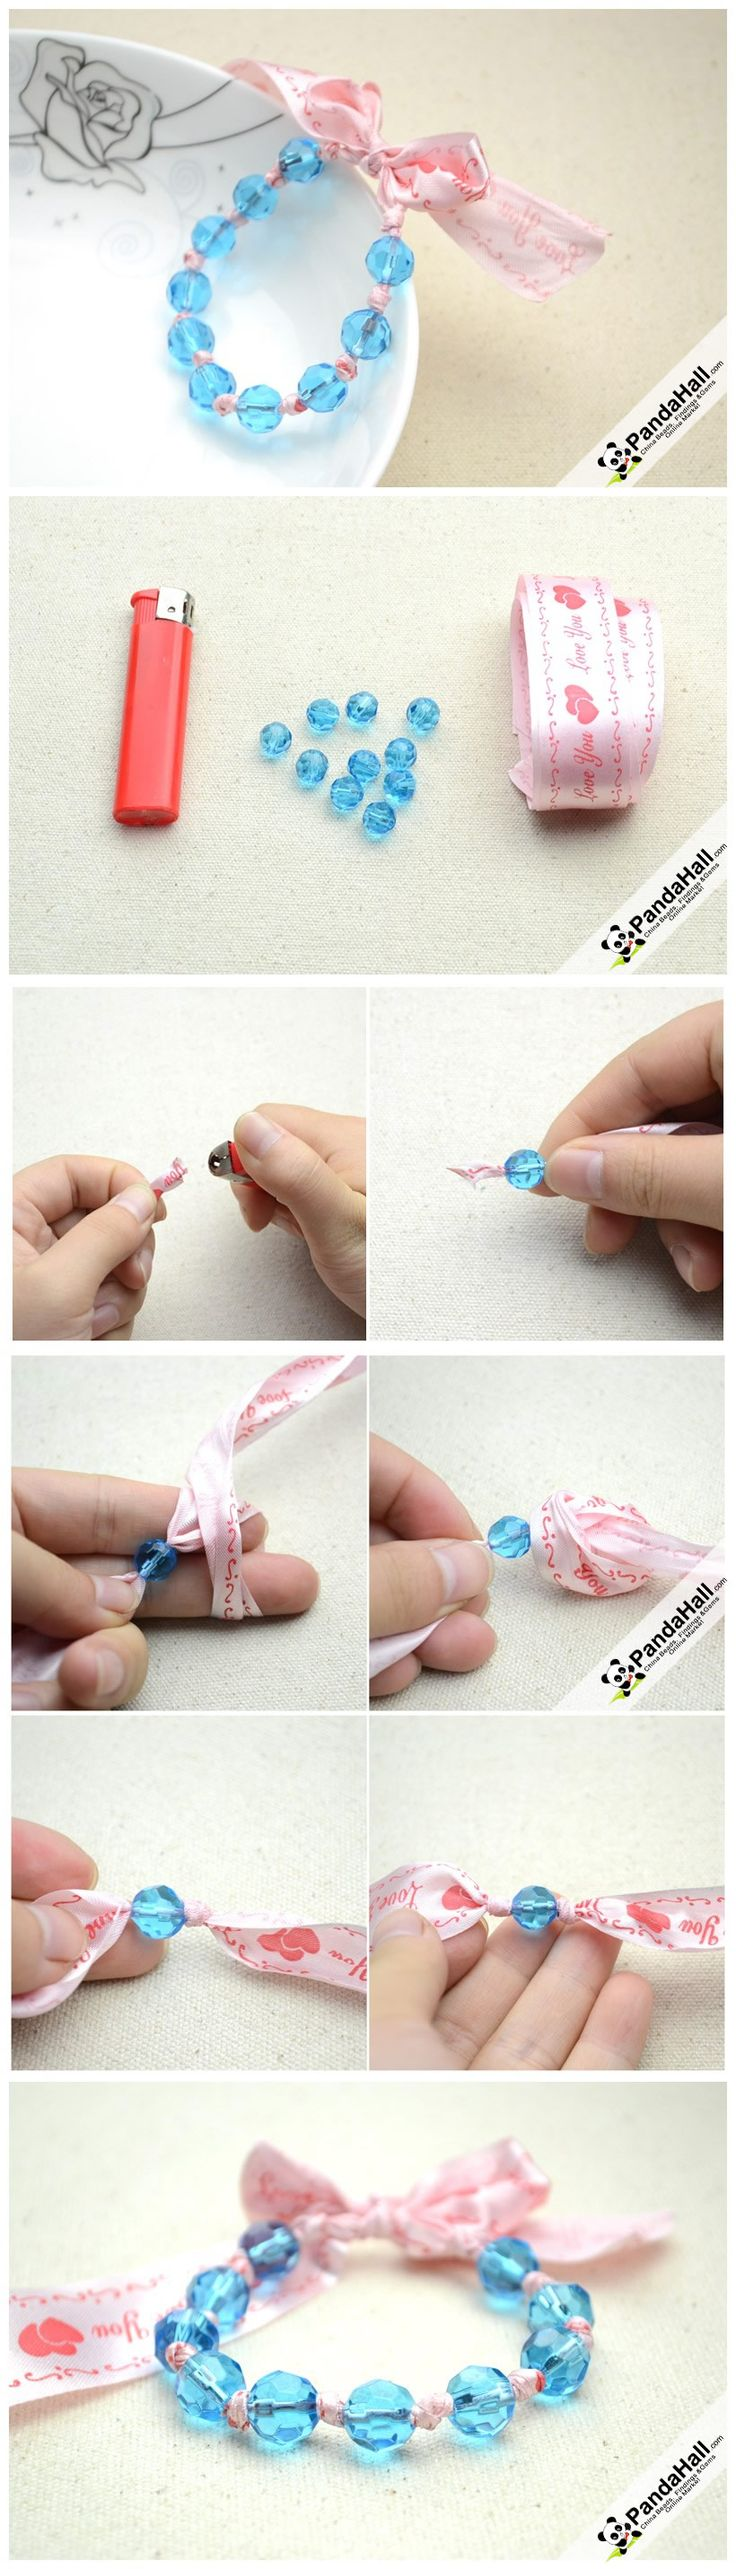 Follow our steps to learn how to make a bracelet with ribbon and beads. We hope that this tutorial inspires you to invent more handmade bracelet.